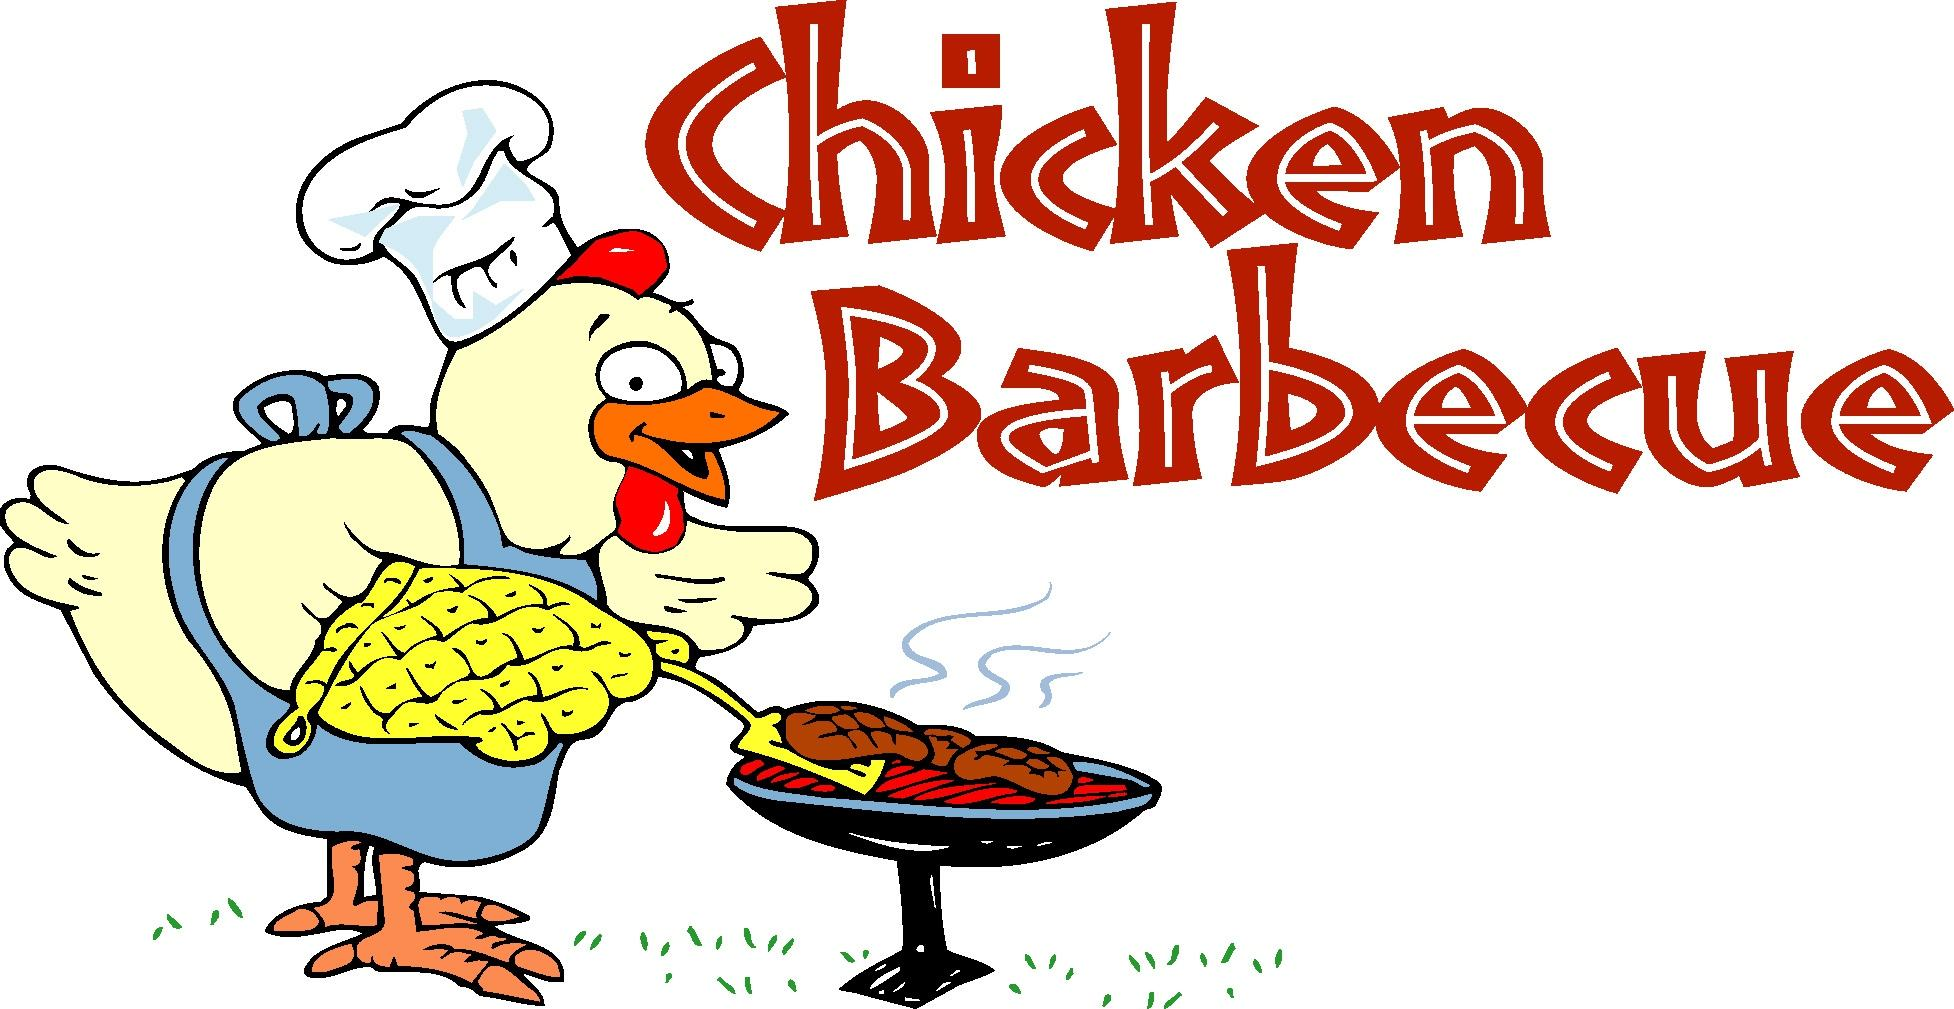 Barbecue clipart bbq lunch. Invitations free guide party